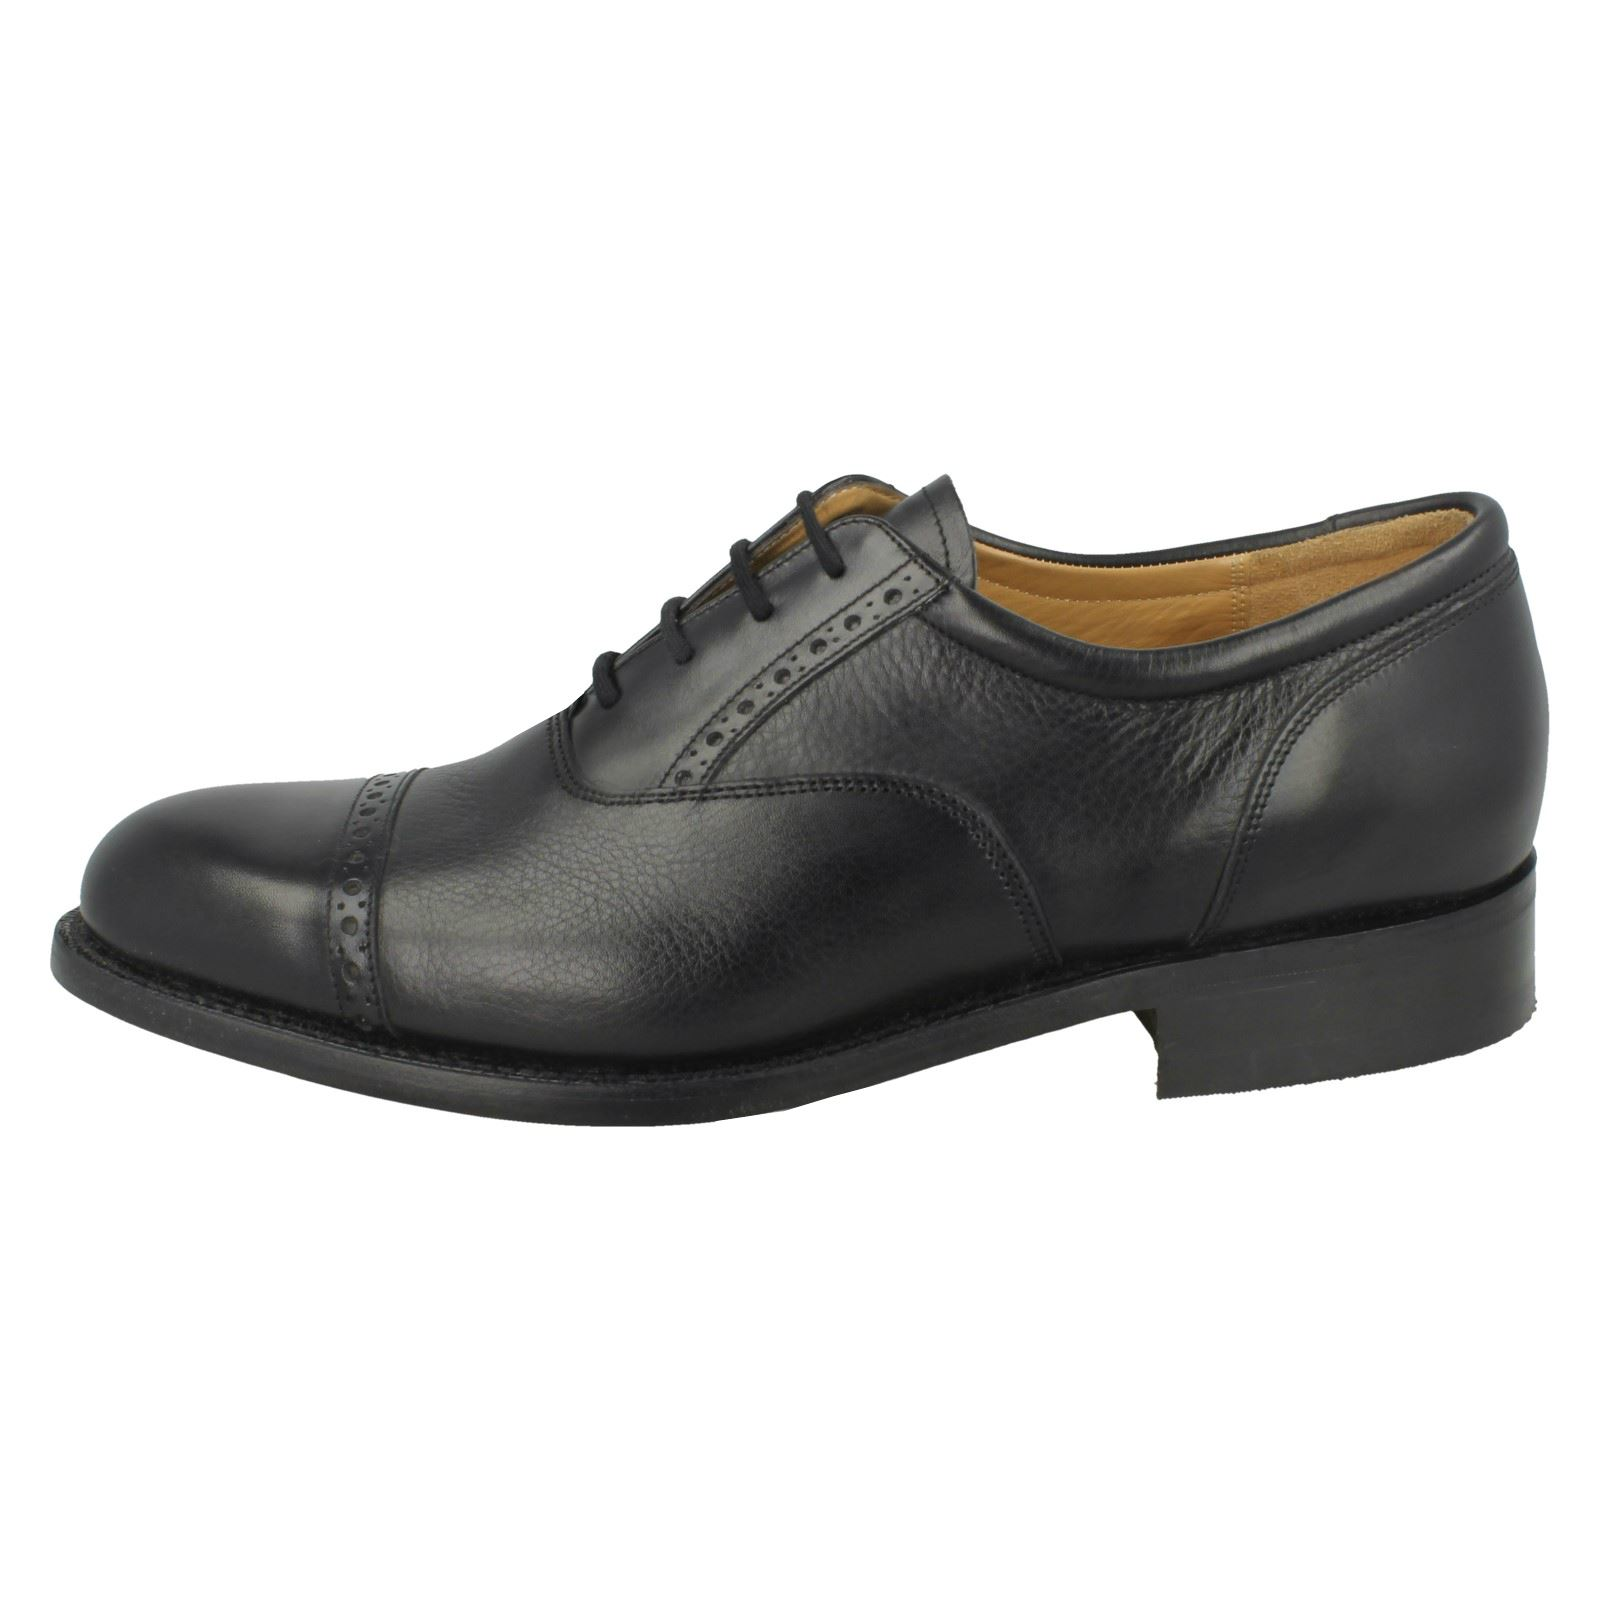 Blk Barker Formal black Sofite Mens Shoes Shoreham calf PAgxwwqvn